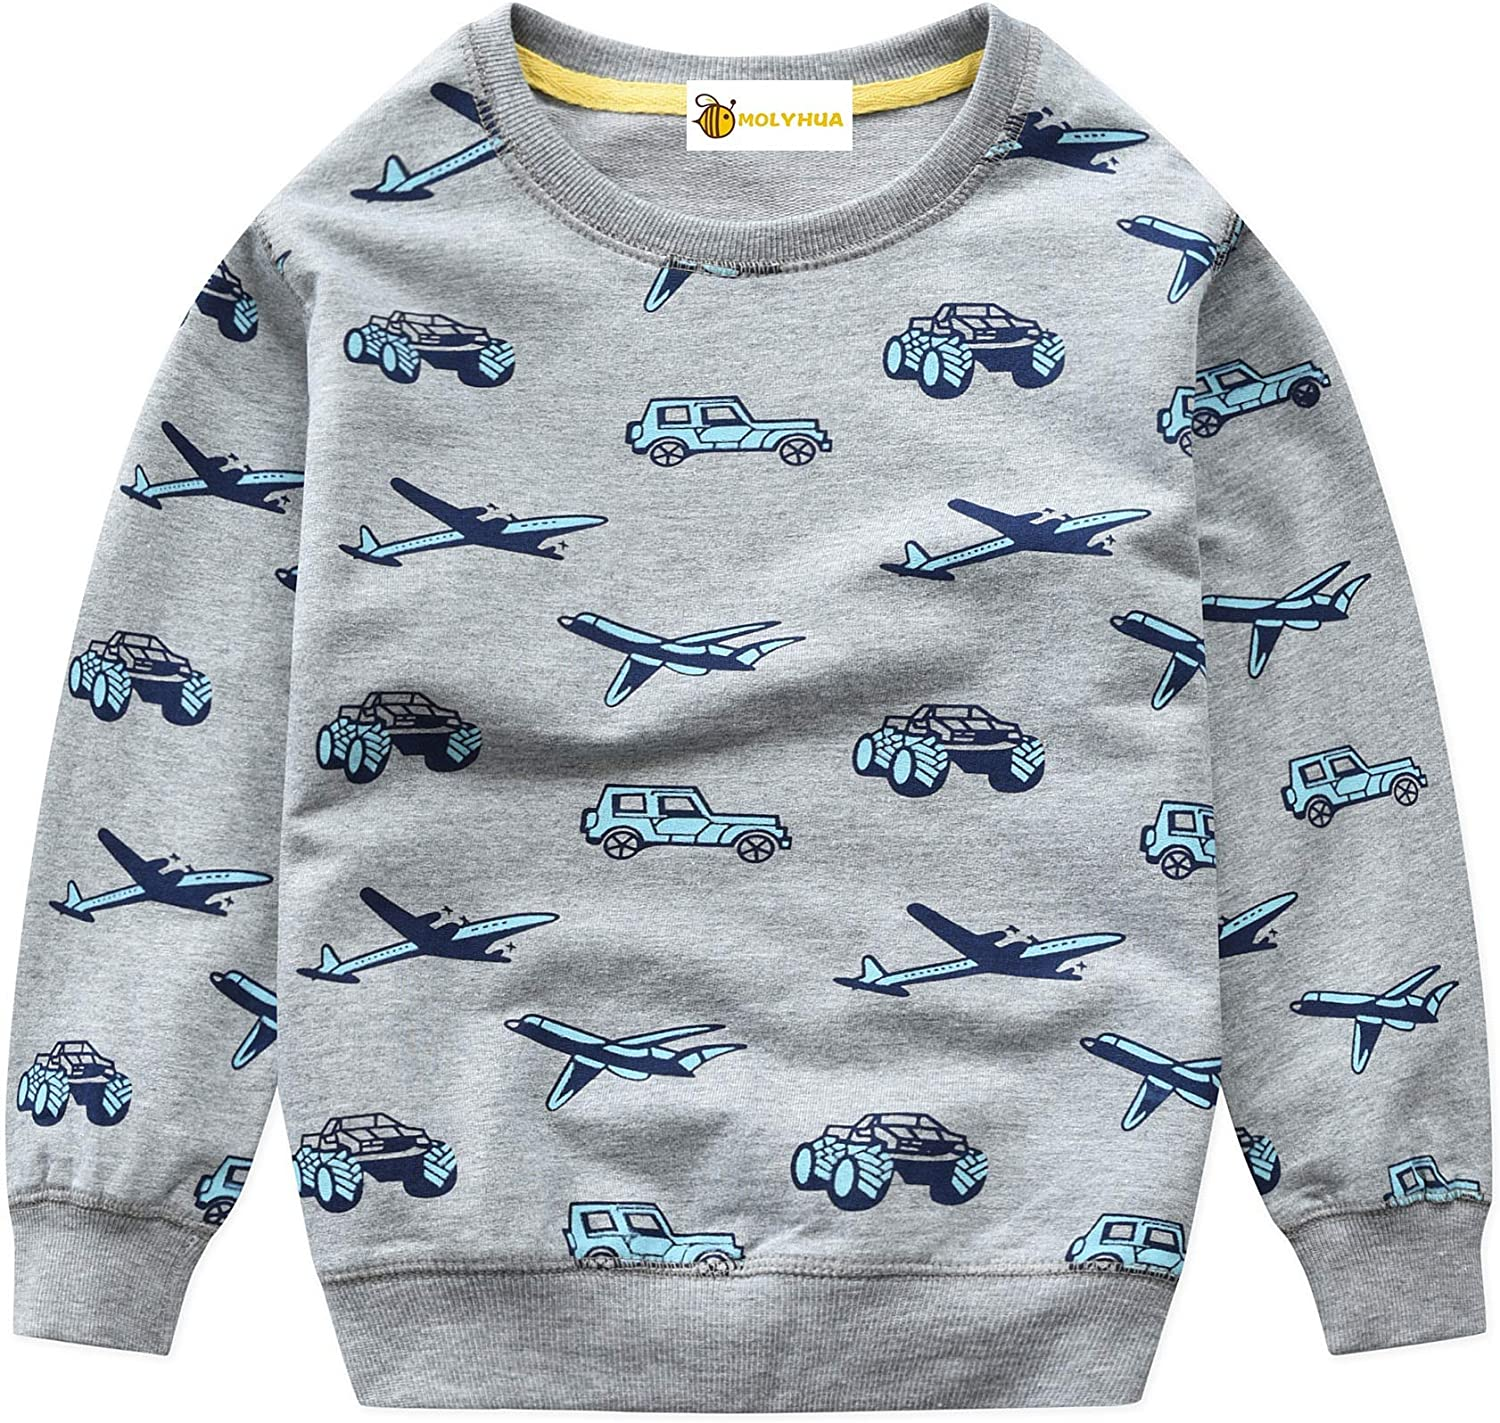 Toddler Boys Car Sweatshirts Little Kids Grey Long Sleeve Sweaters Cotton Casual Pullover Child Crewneck Tops 2-7T